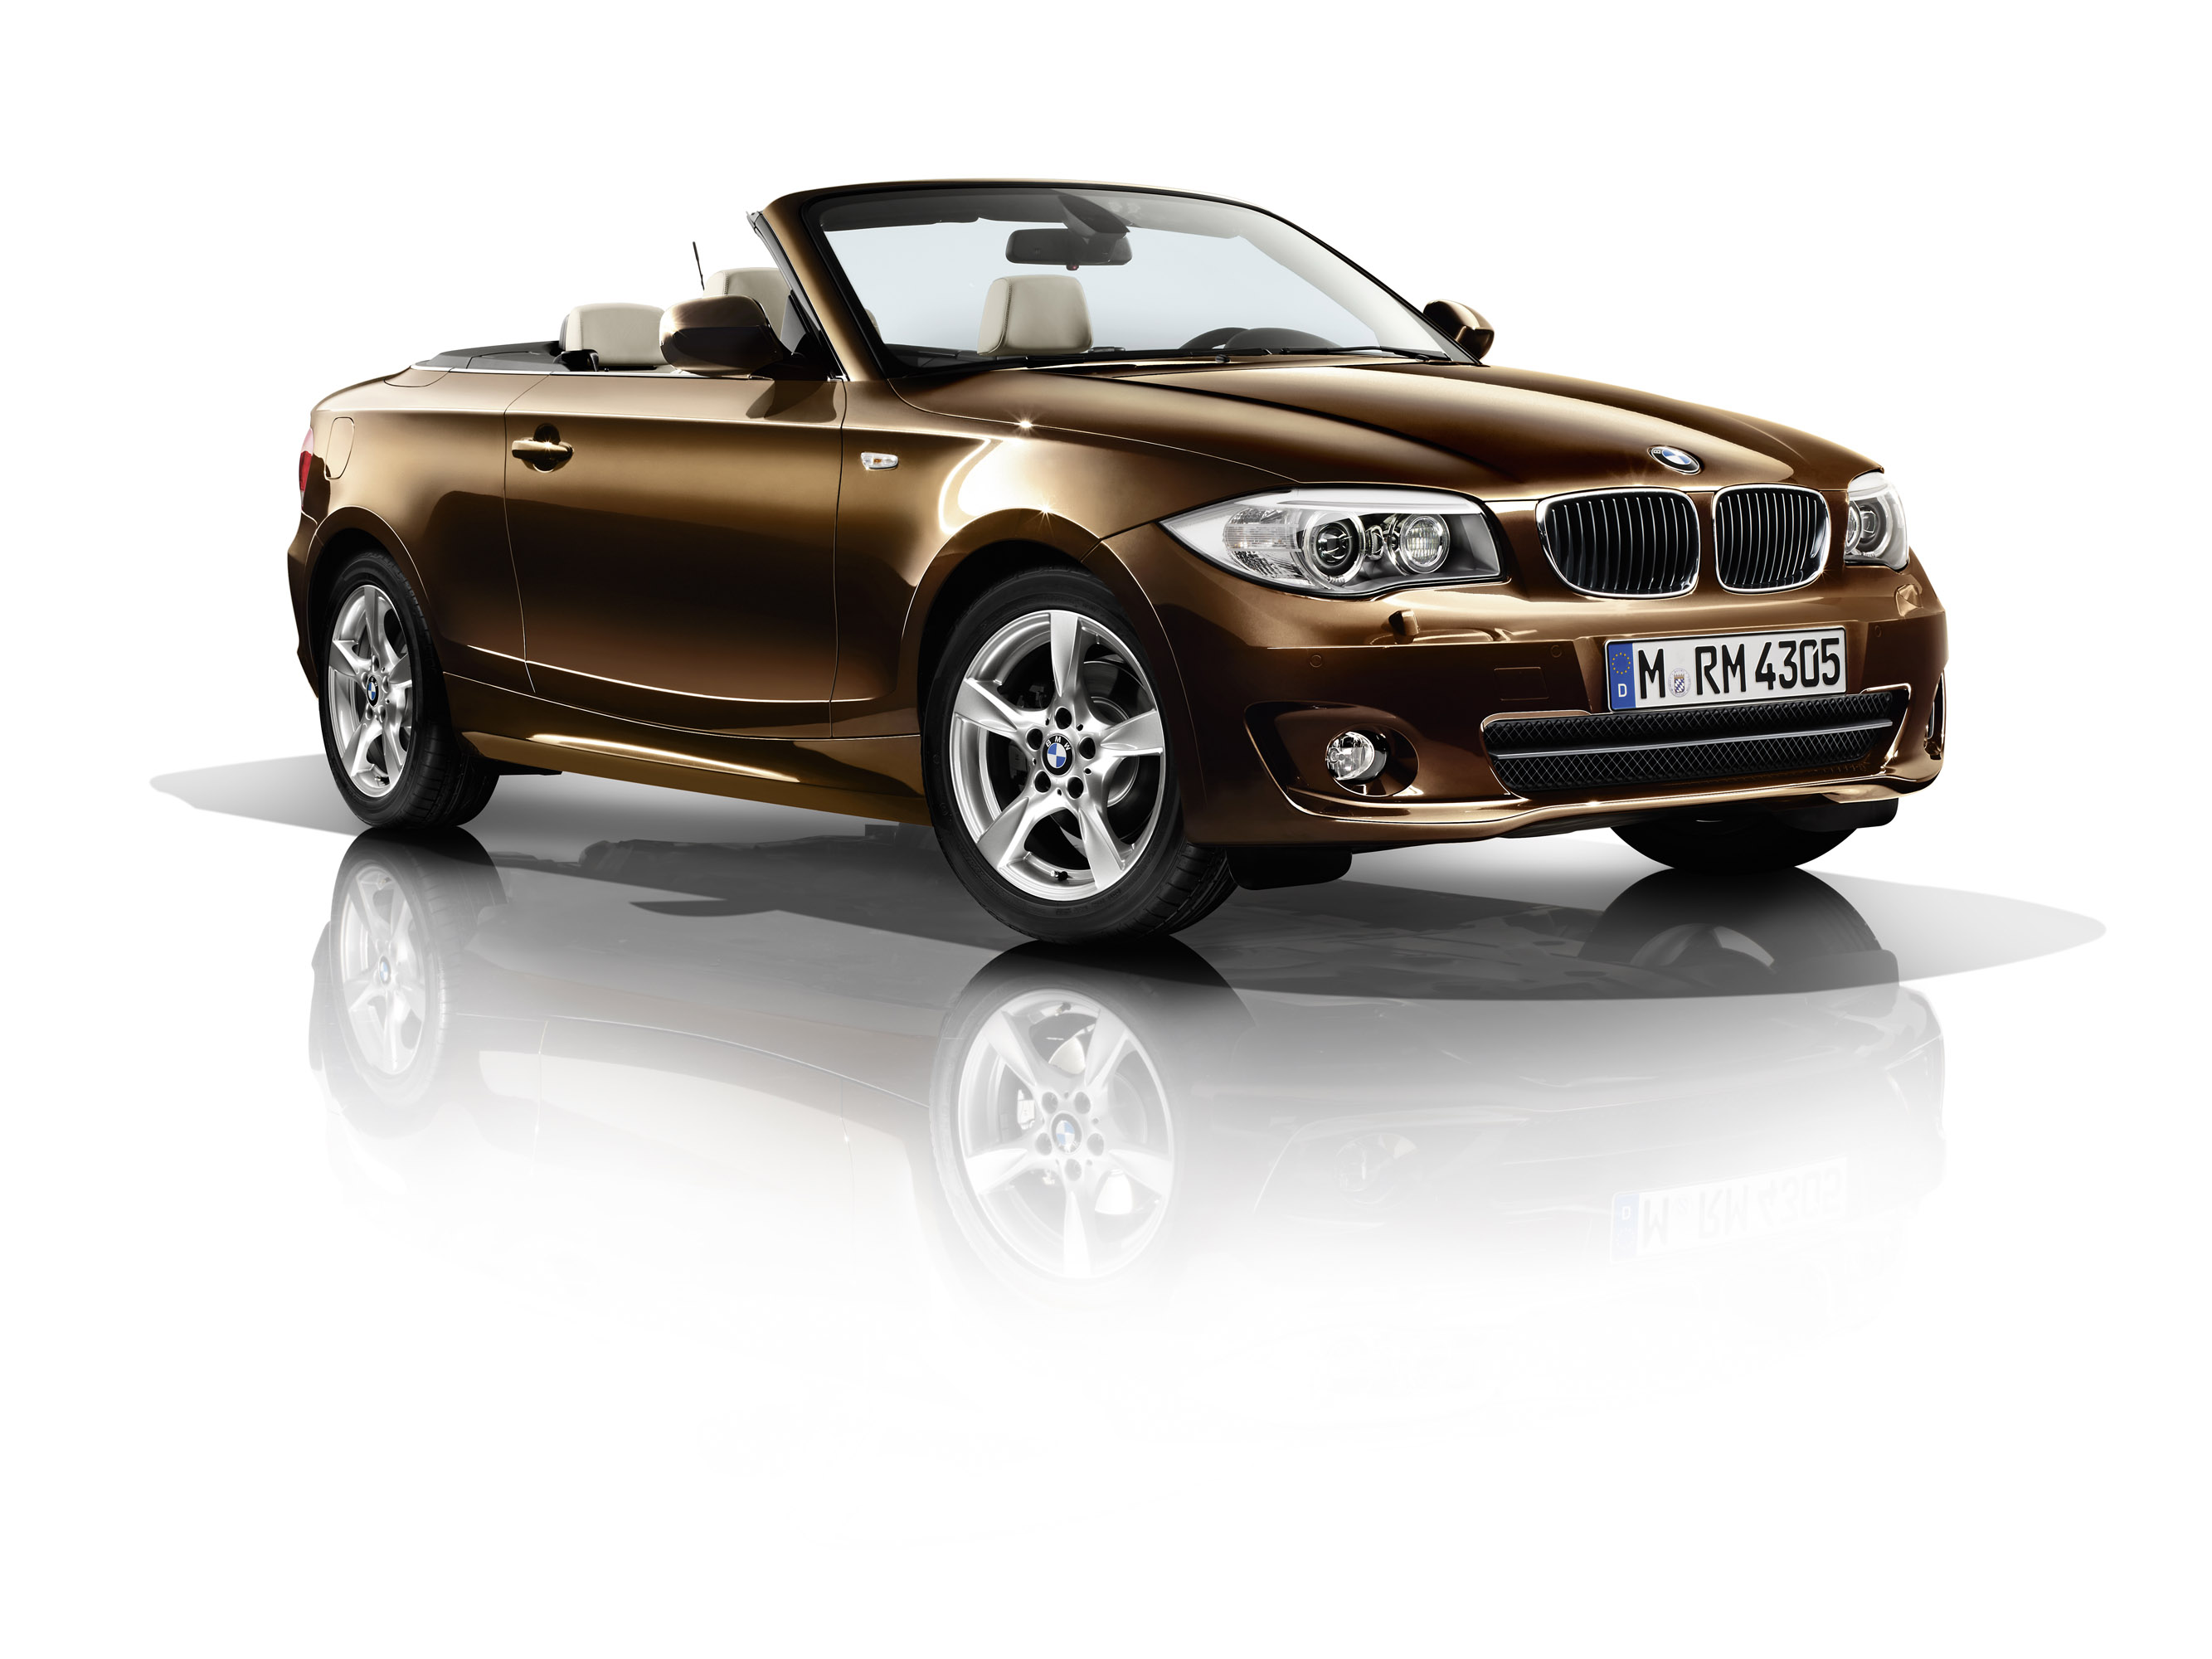 2011 BMW 1 Series Convertible - Picture 46655